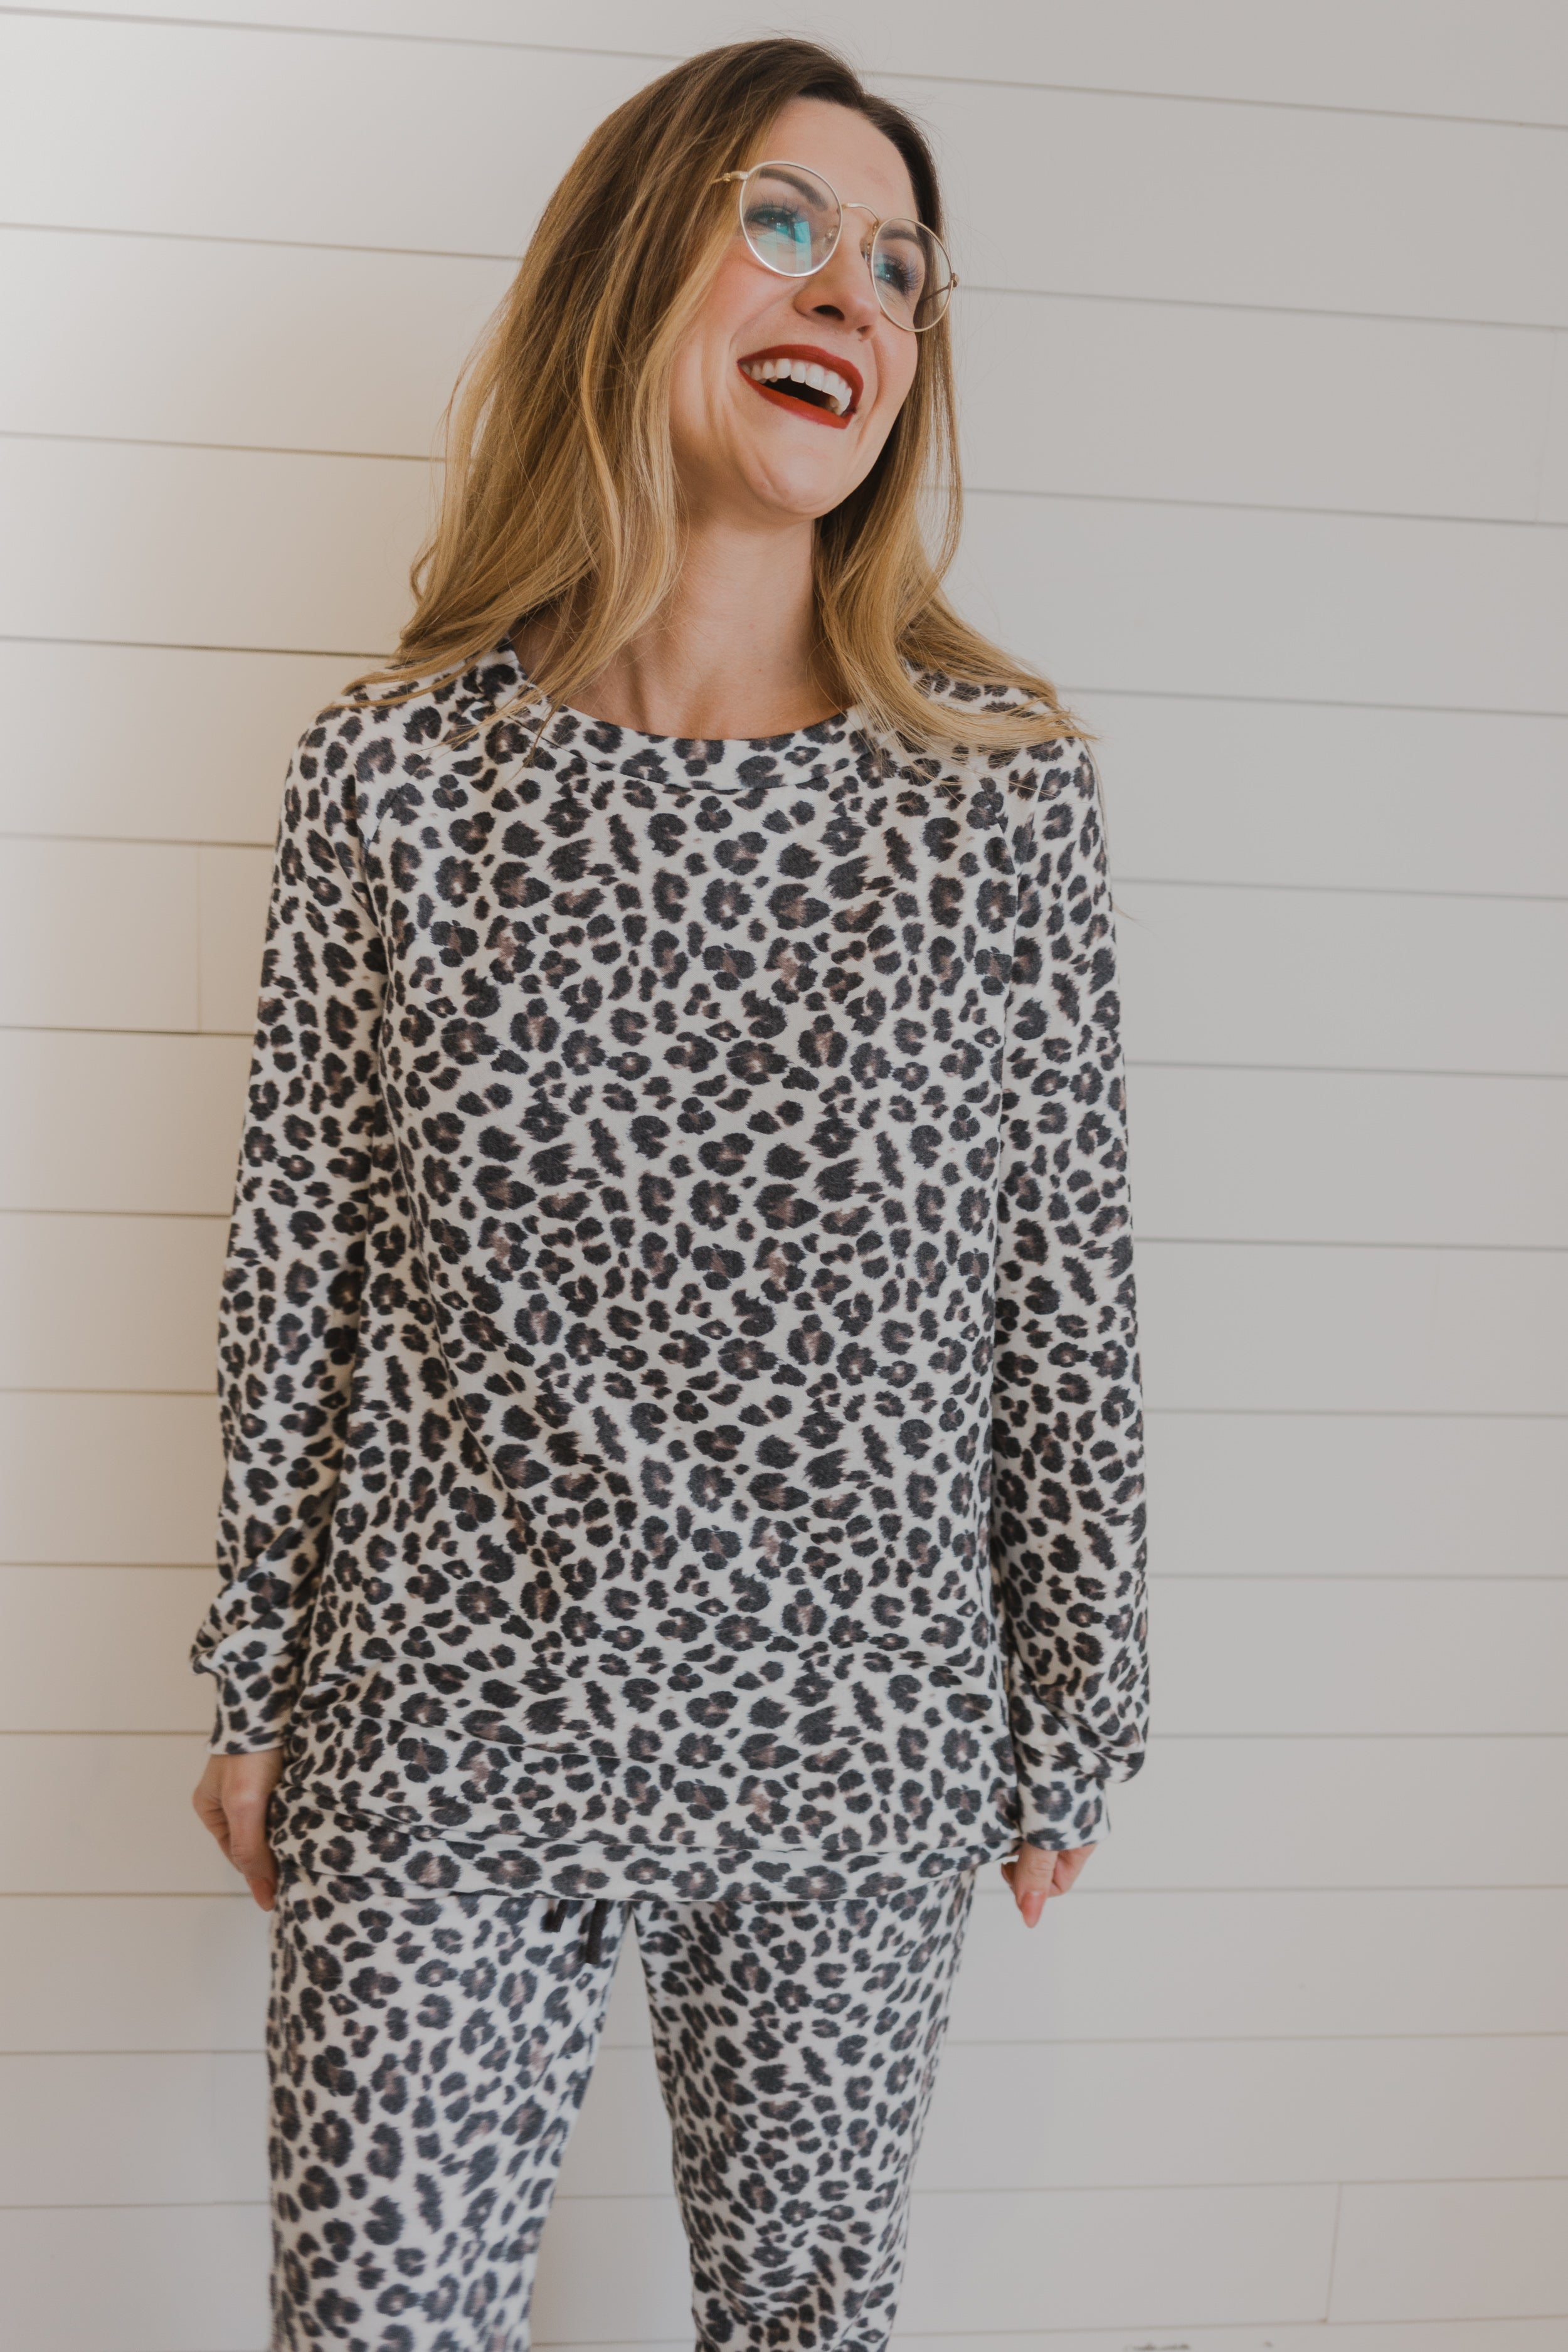 Brushed Leopard PJ Top